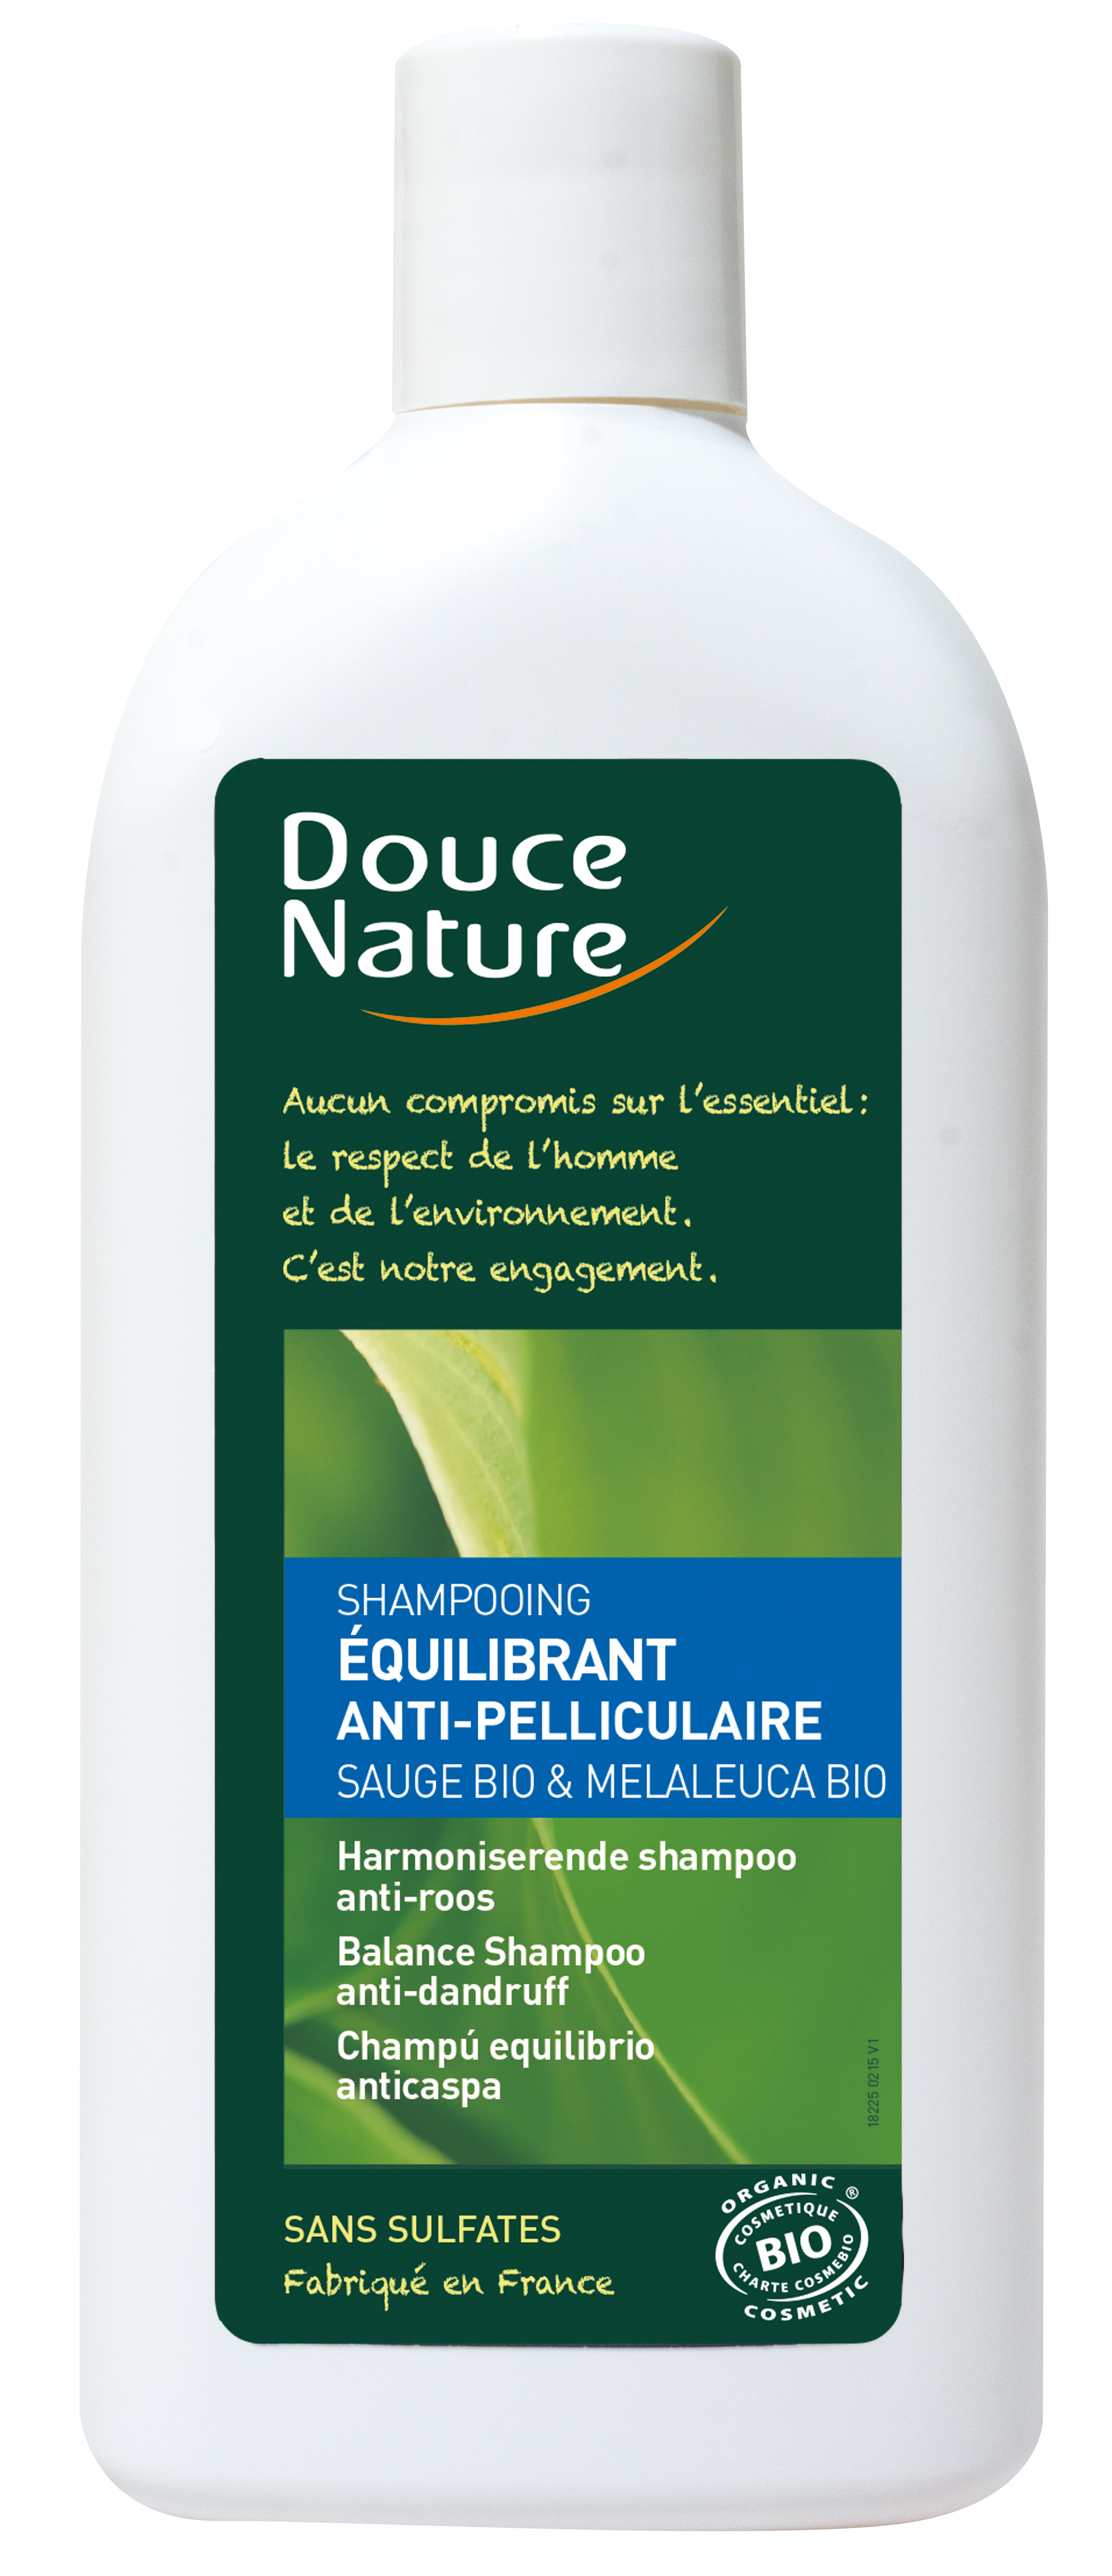 Shampooing équilibrant anti-pelliculaire, Douce Nature (300 ml)